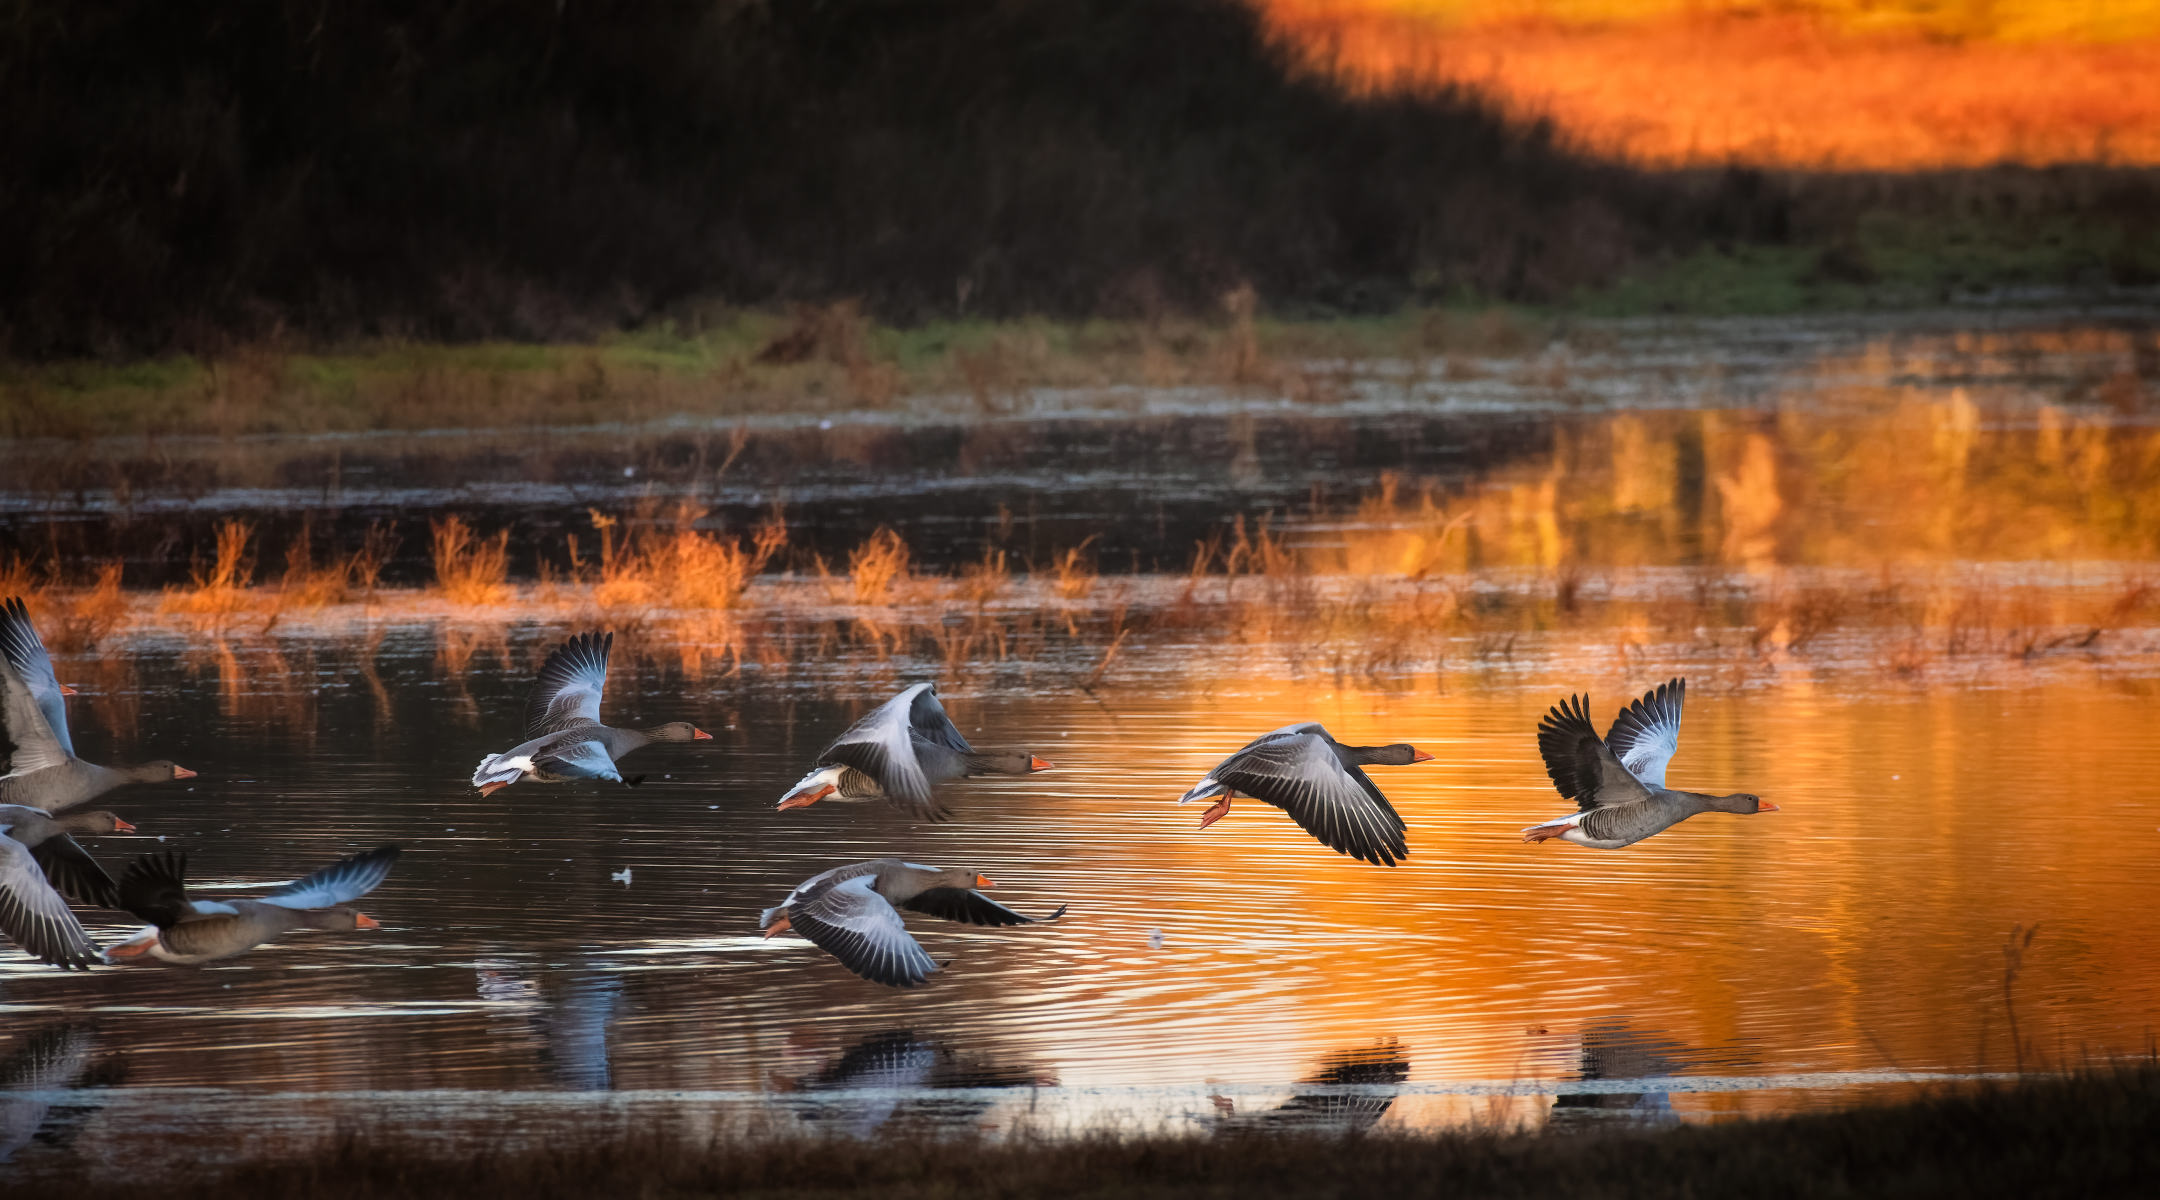 greylag geese taking flight in winter morning light